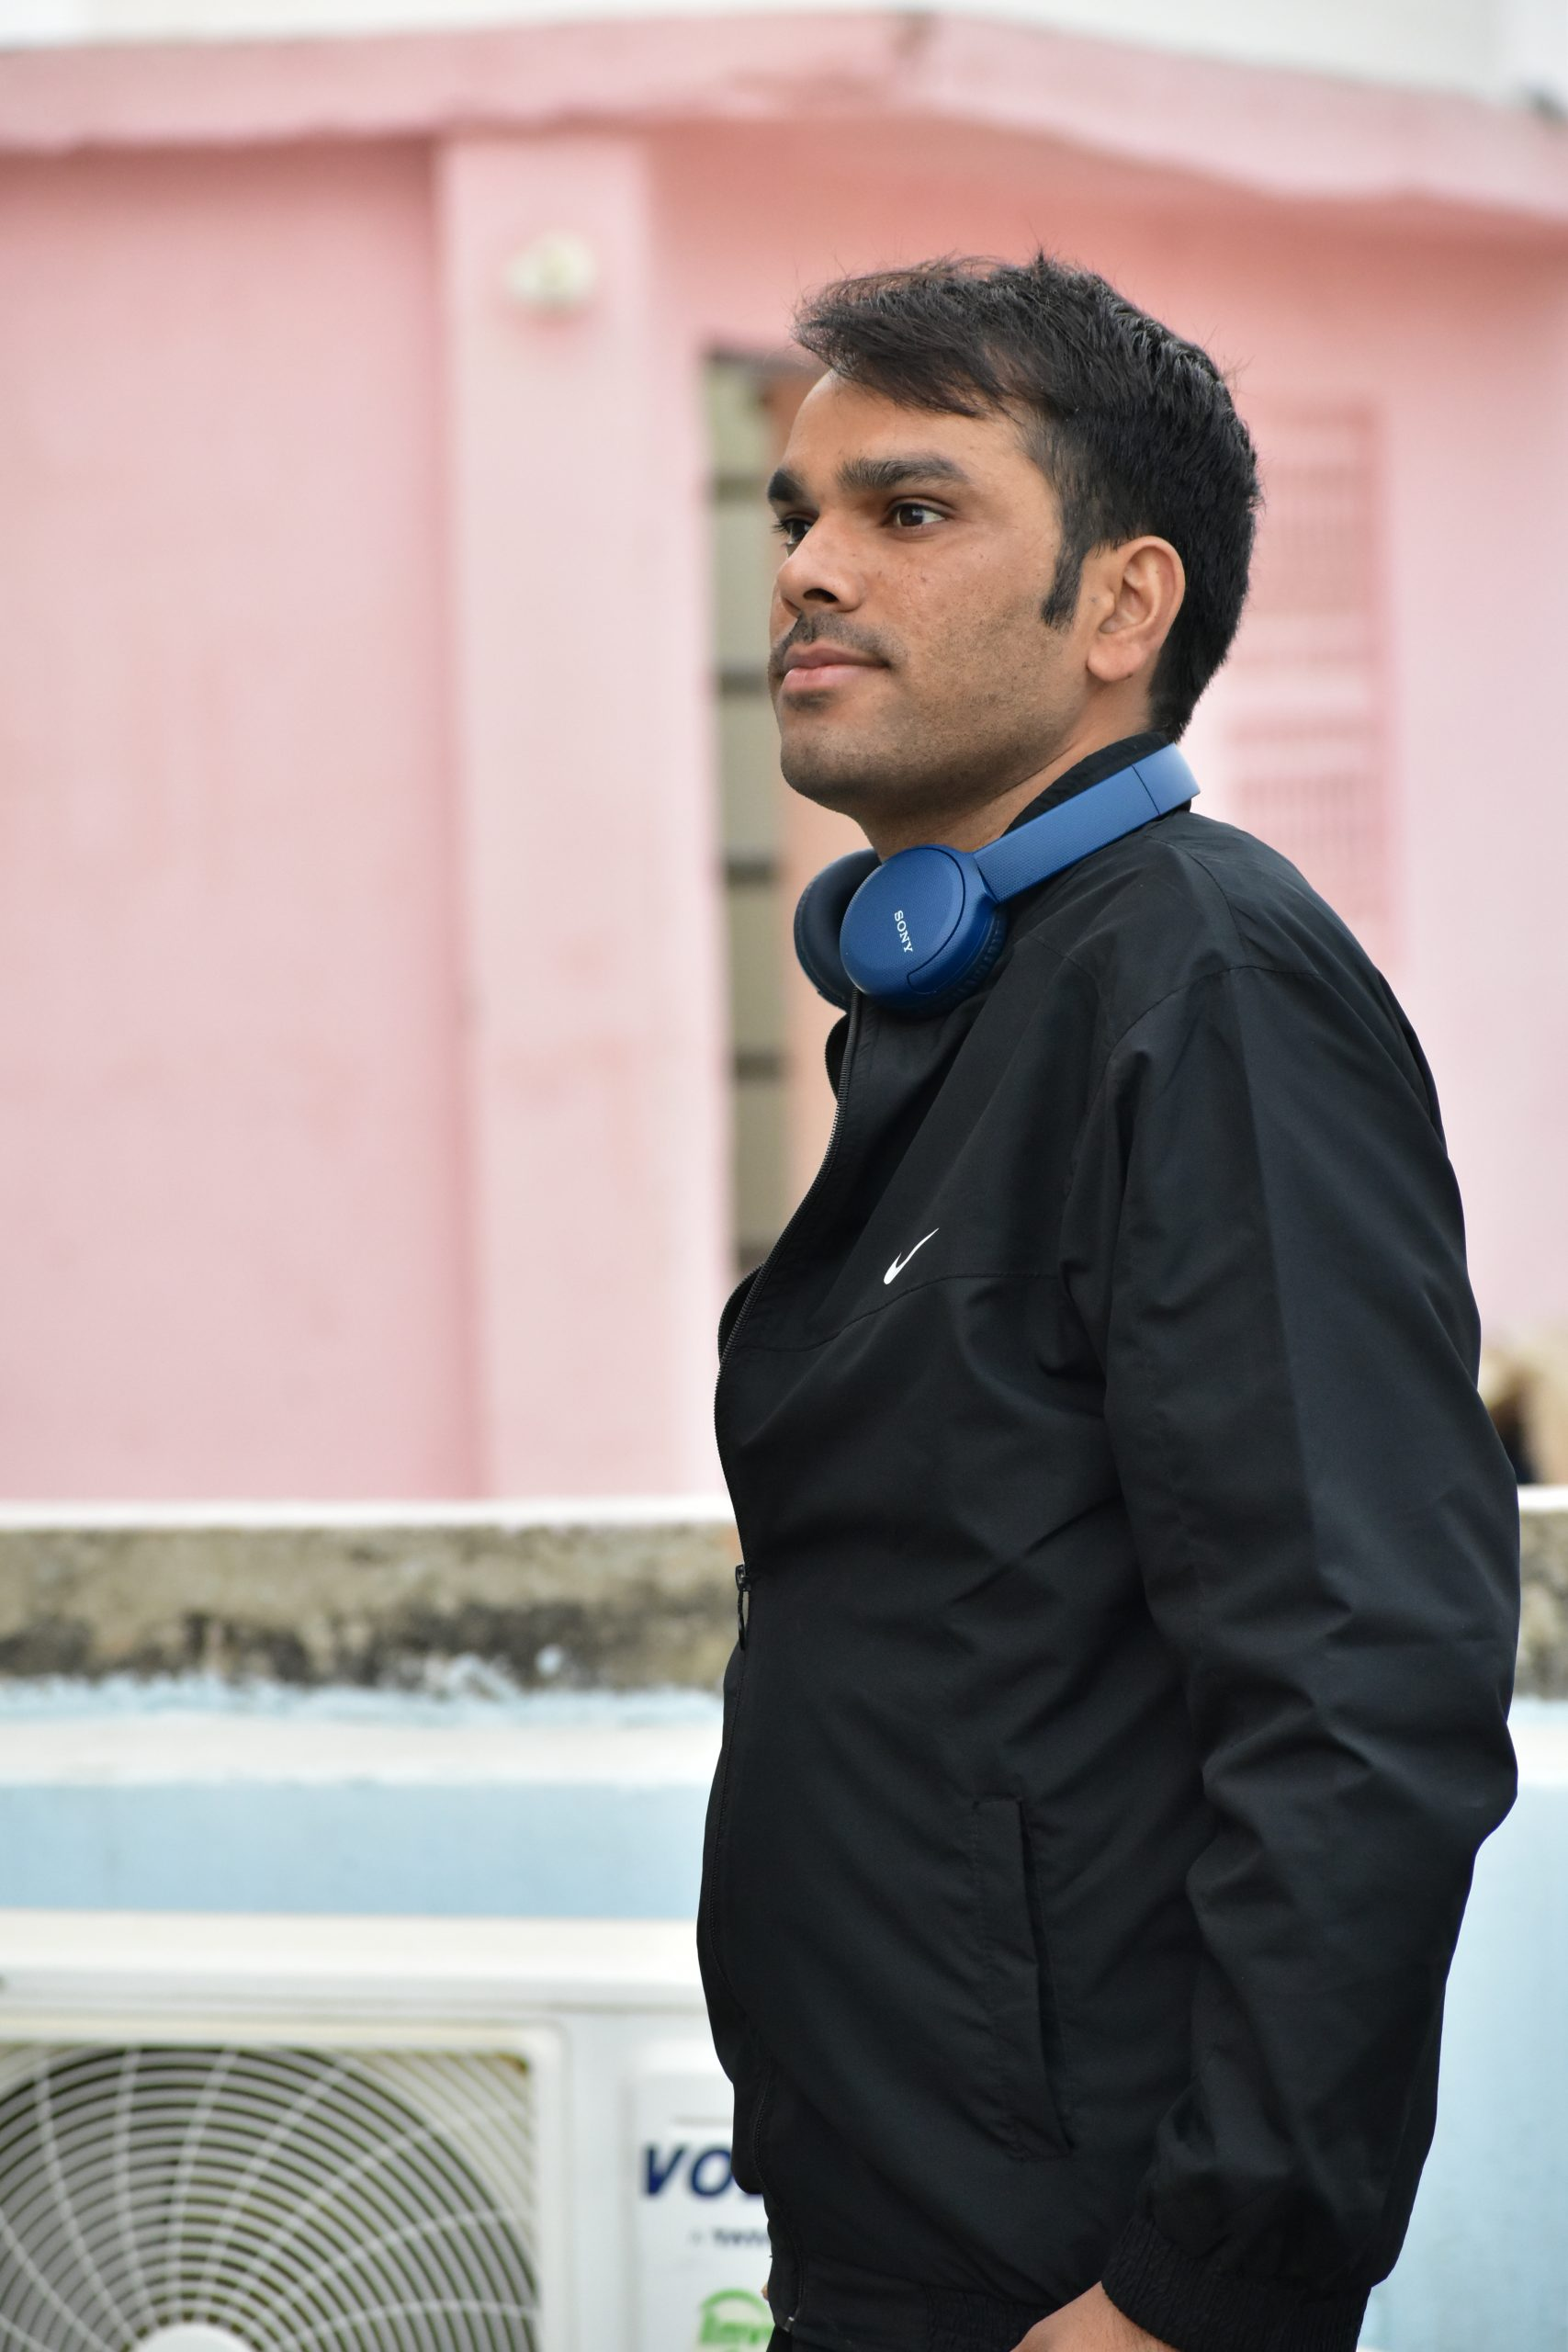 Man giving pose with headphone